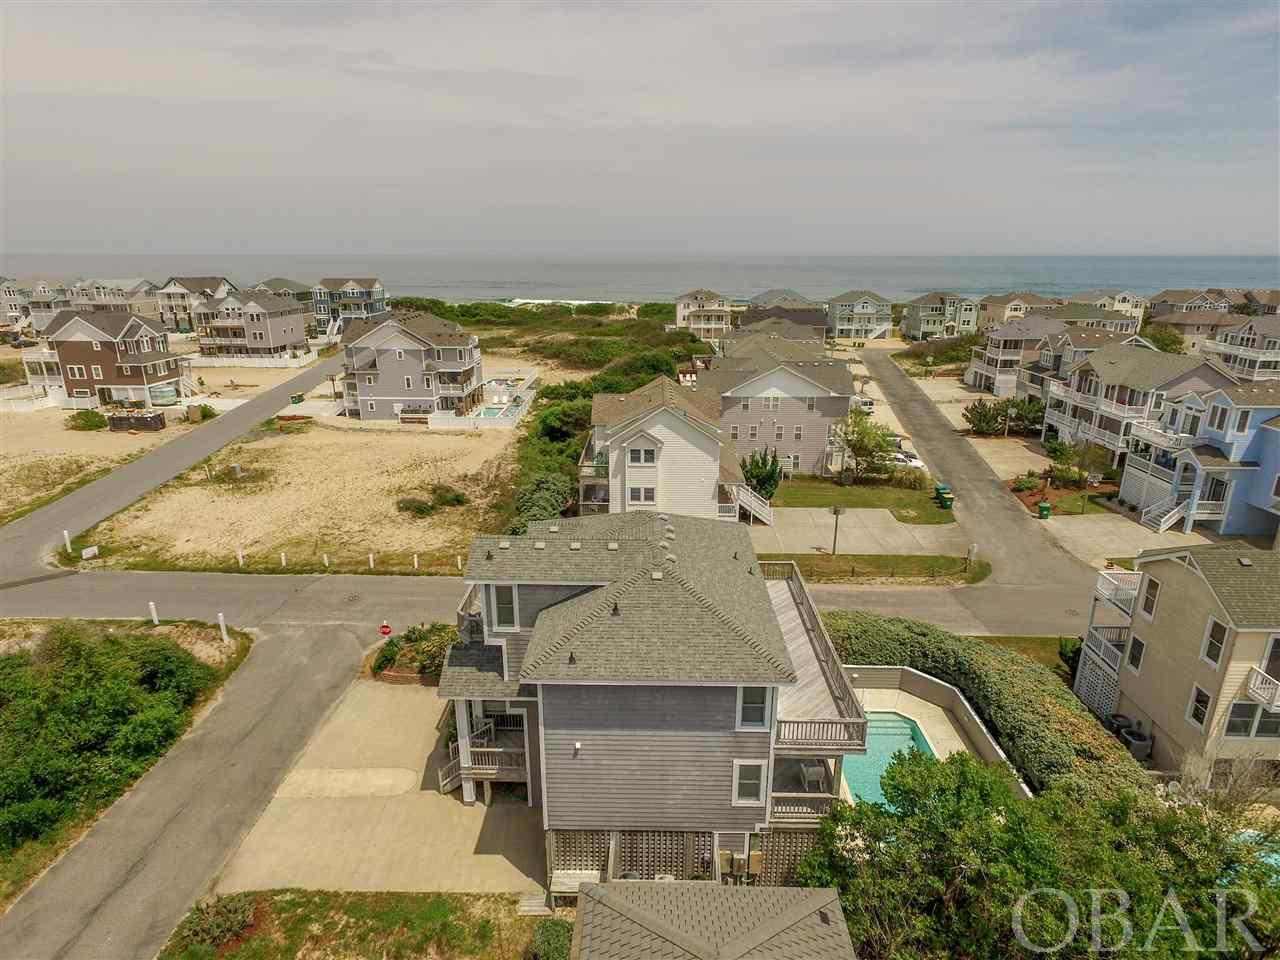 652 Juniper Berry Court,Corolla,NC 27927,5 Bedrooms Bedrooms,5 BathroomsBathrooms,Residential,Juniper Berry Court,92355